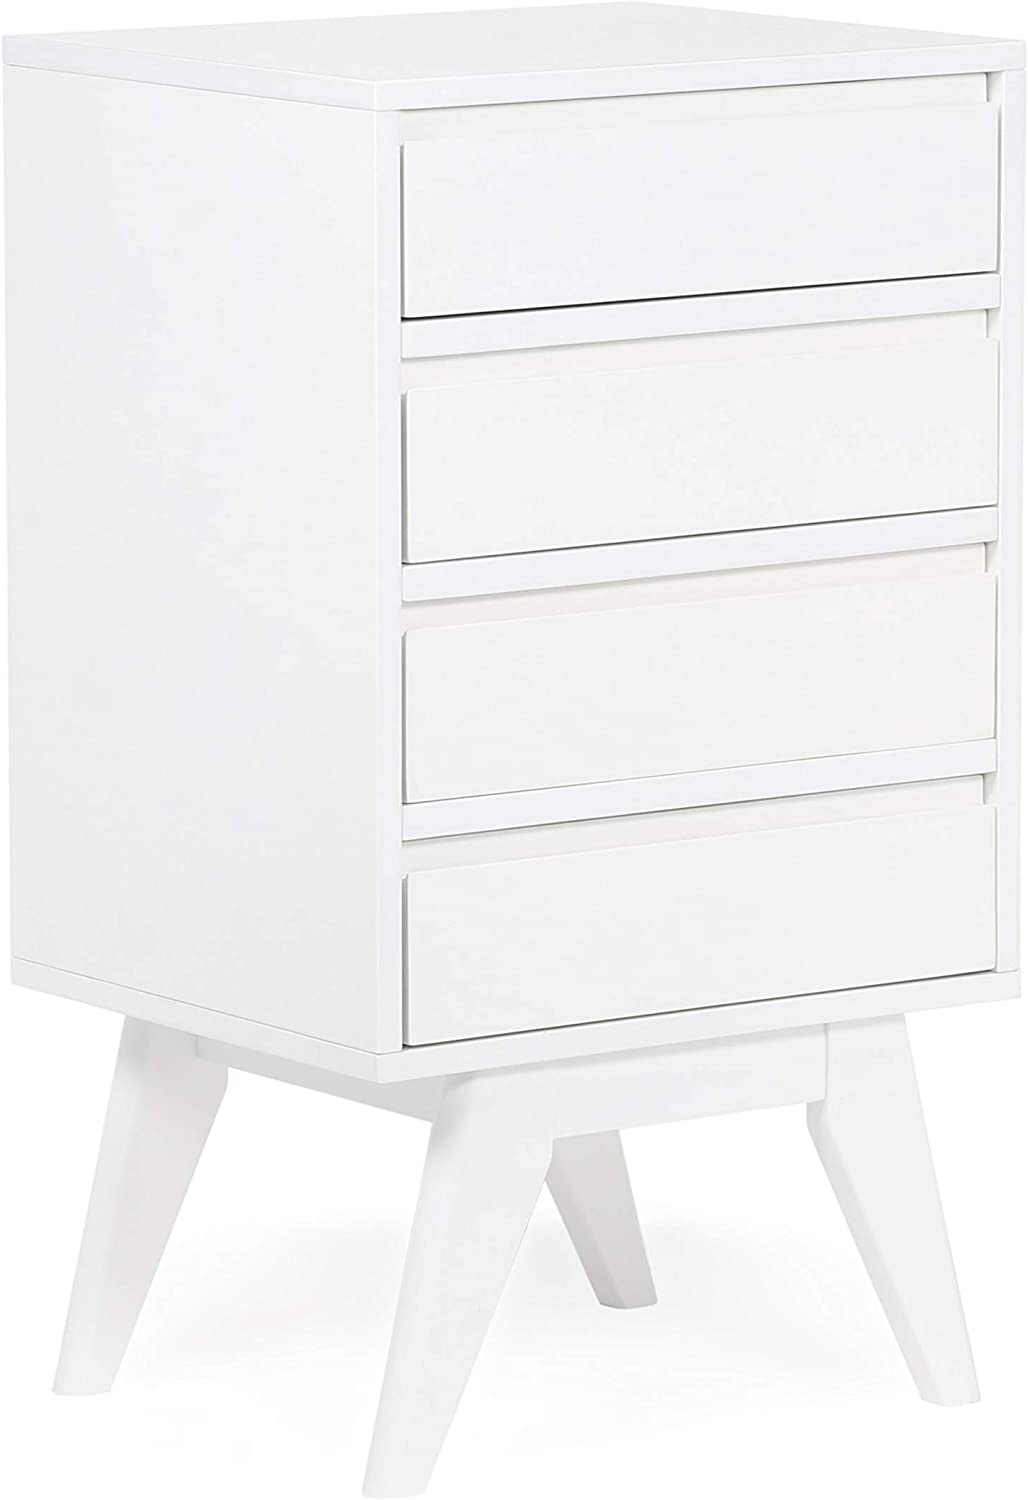 SIMPLIHOME Draper 32 inch H x 18 inch W Four Drawer Floor Storage Cabinet in Pure White with Storage,4 drawers, for the Bathroom, Mid Century Modern